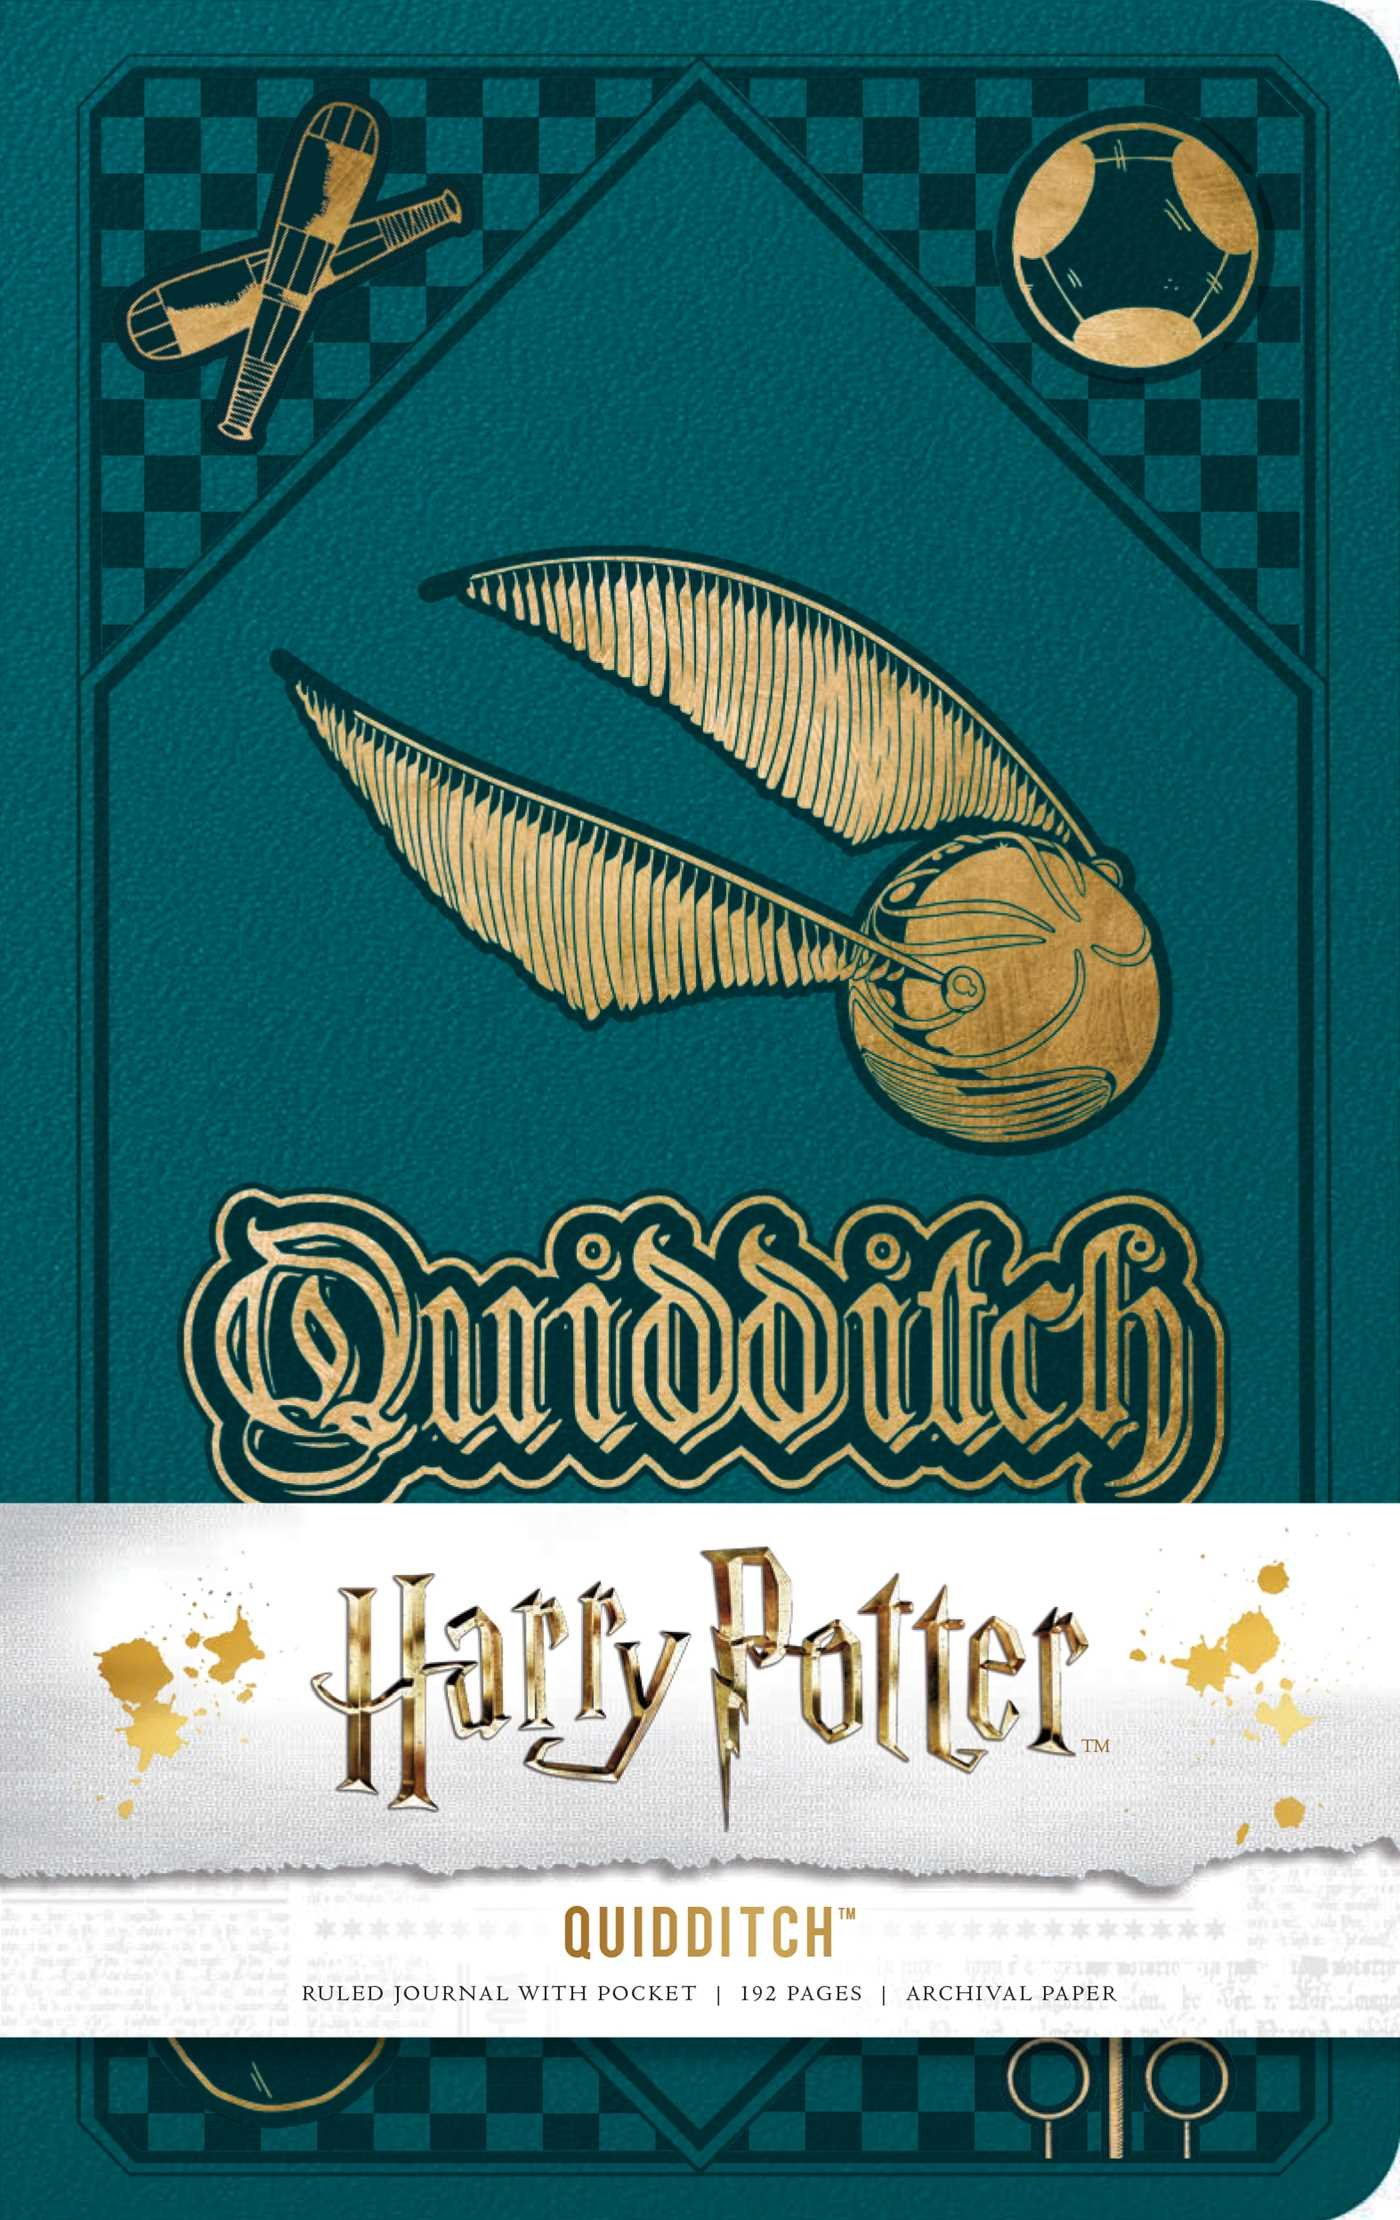 Amazon.com: Harry Potter: Quidditch Hardcover Ruled Journal ...